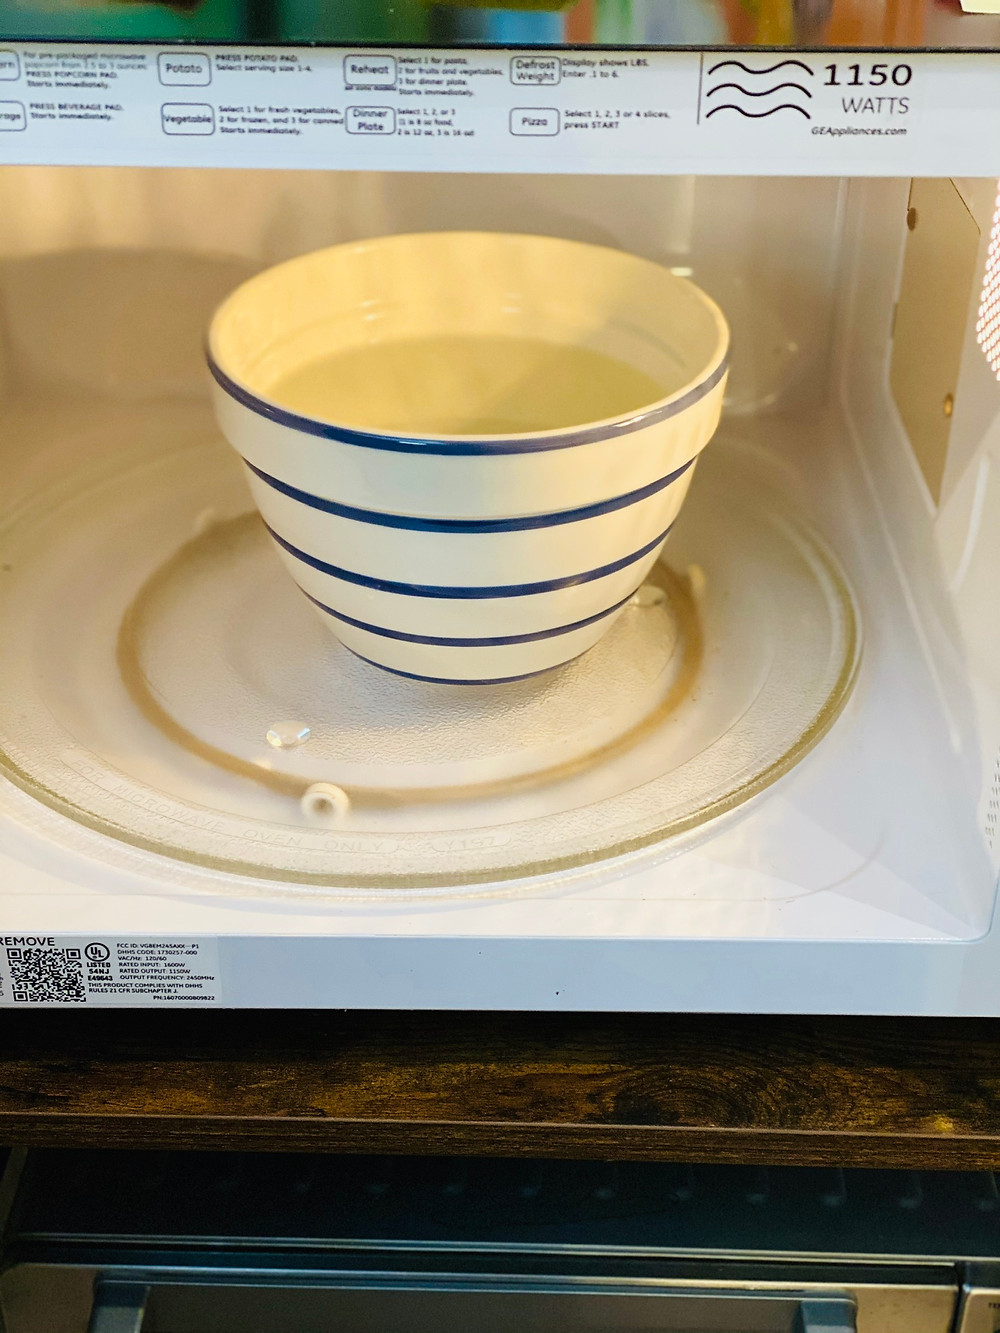 water heating up in a bowl in the microwave